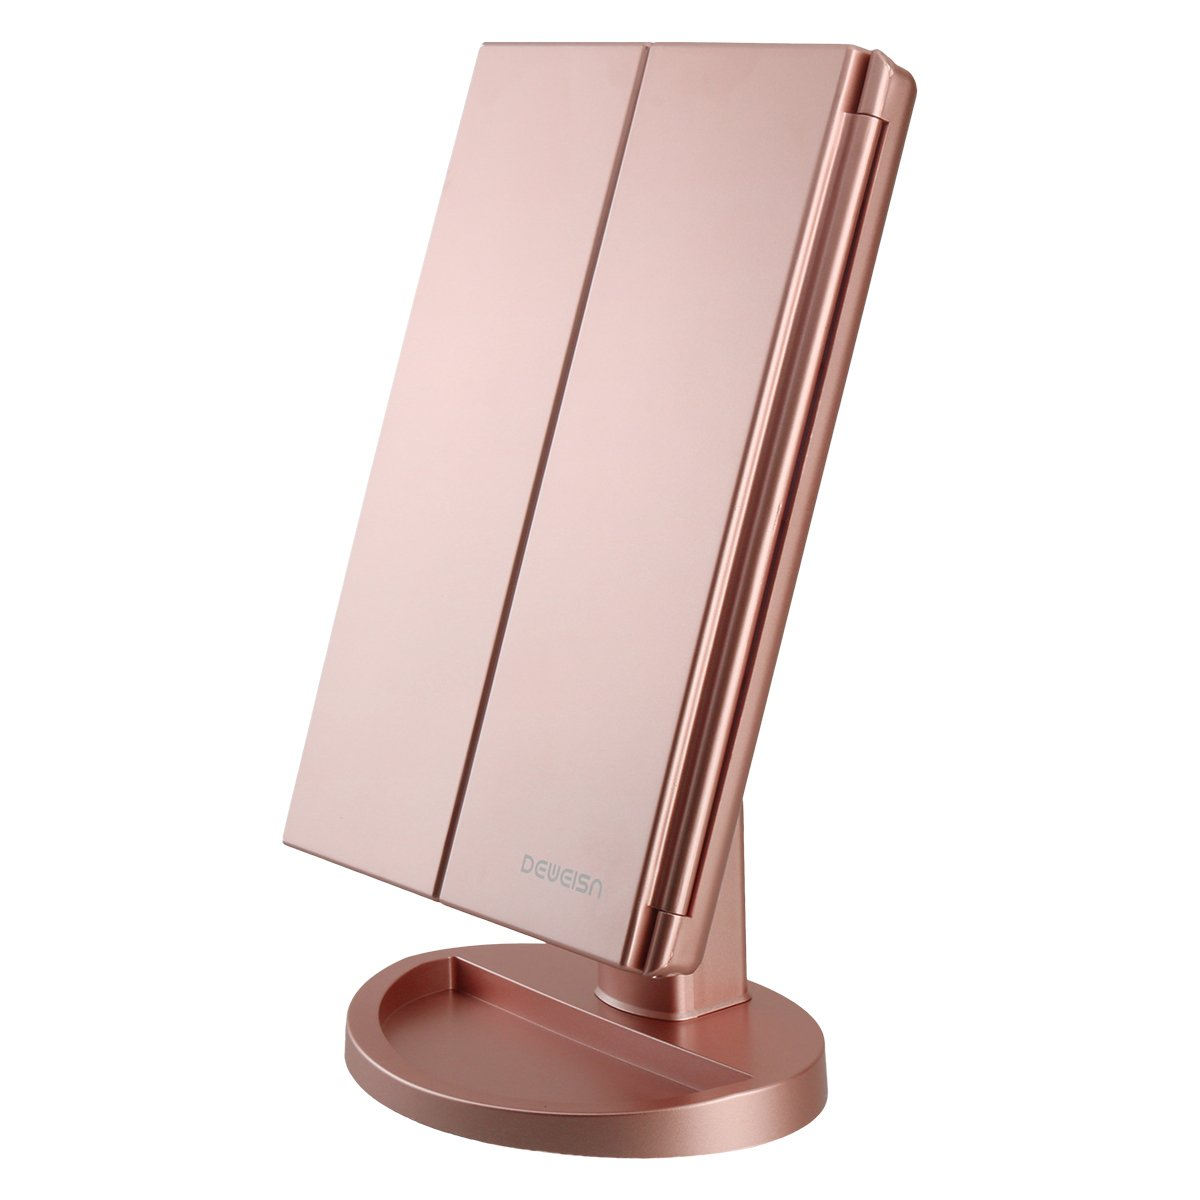 Richen Deweisn Tri Fold Lighted Vanity Makeup Mirror With